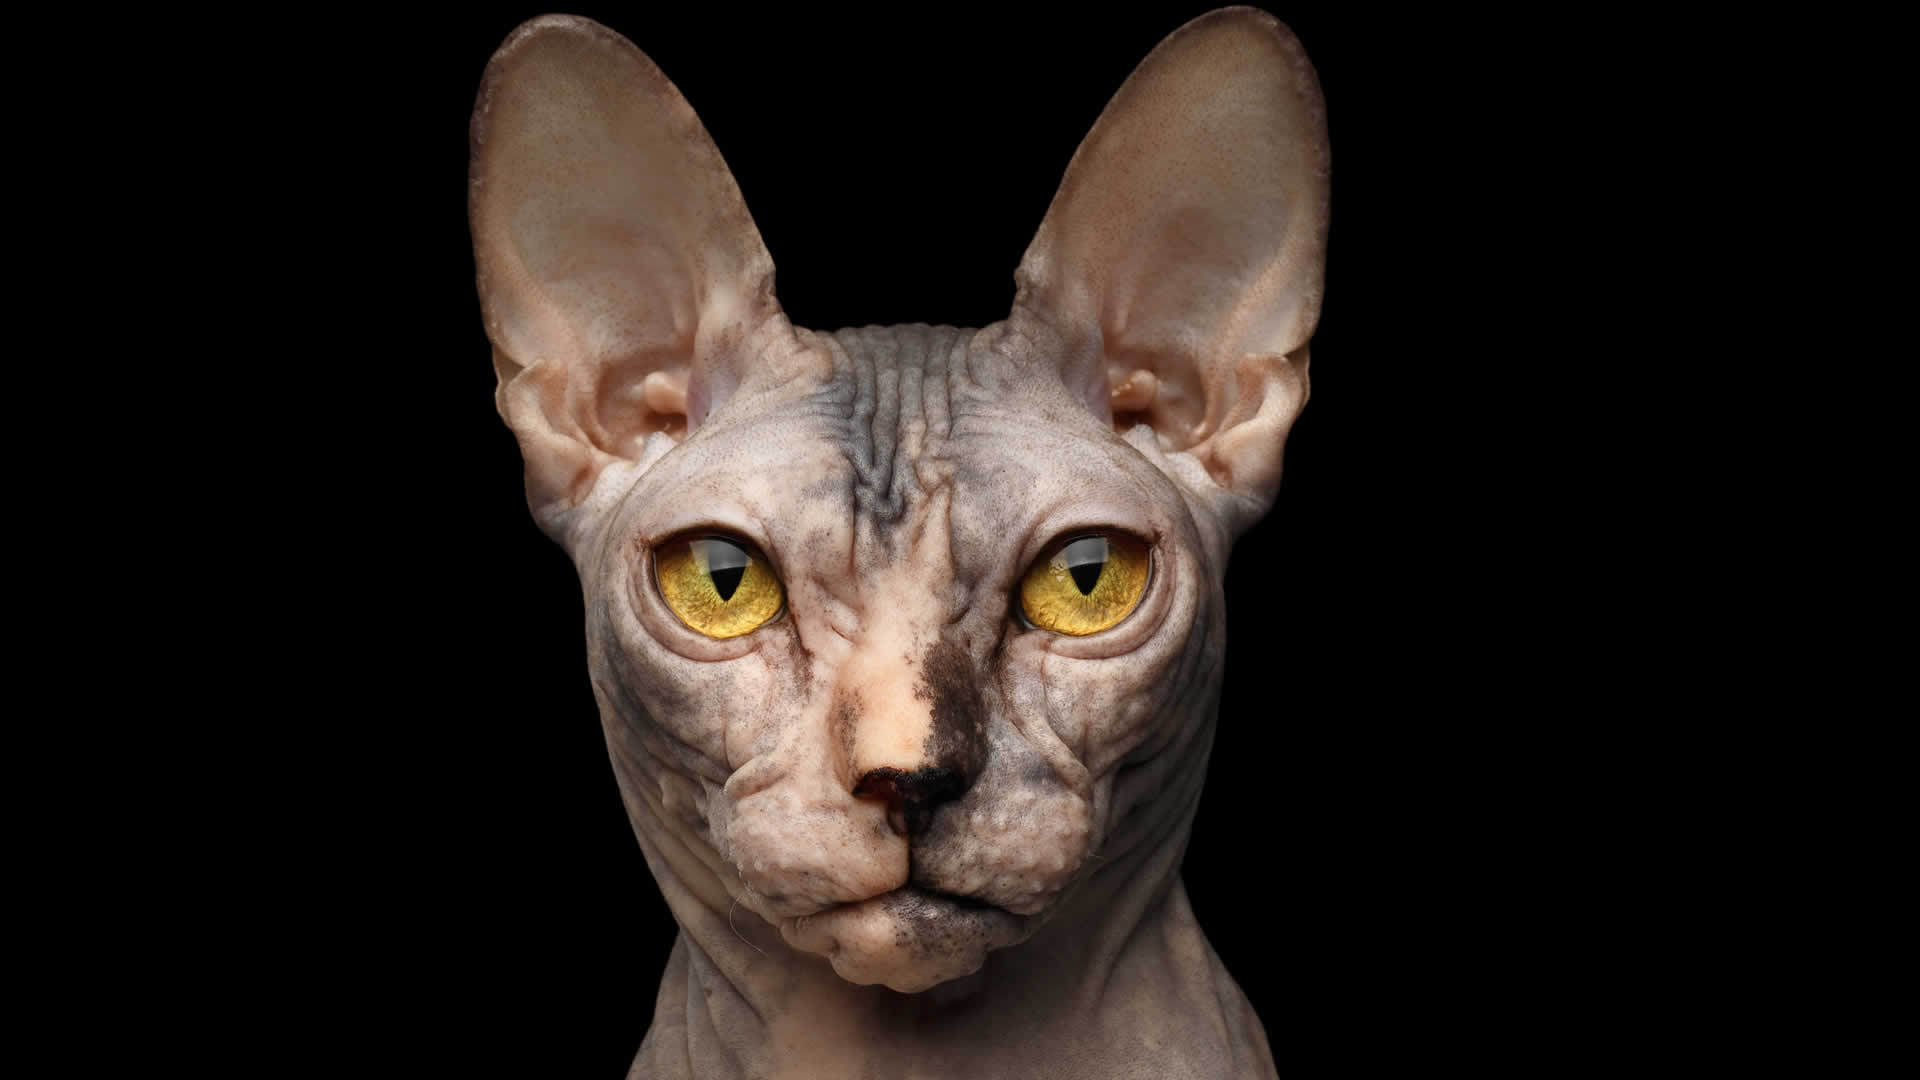 Sphynx cats stunning eyes come in a range of colors including bright yellow and gold